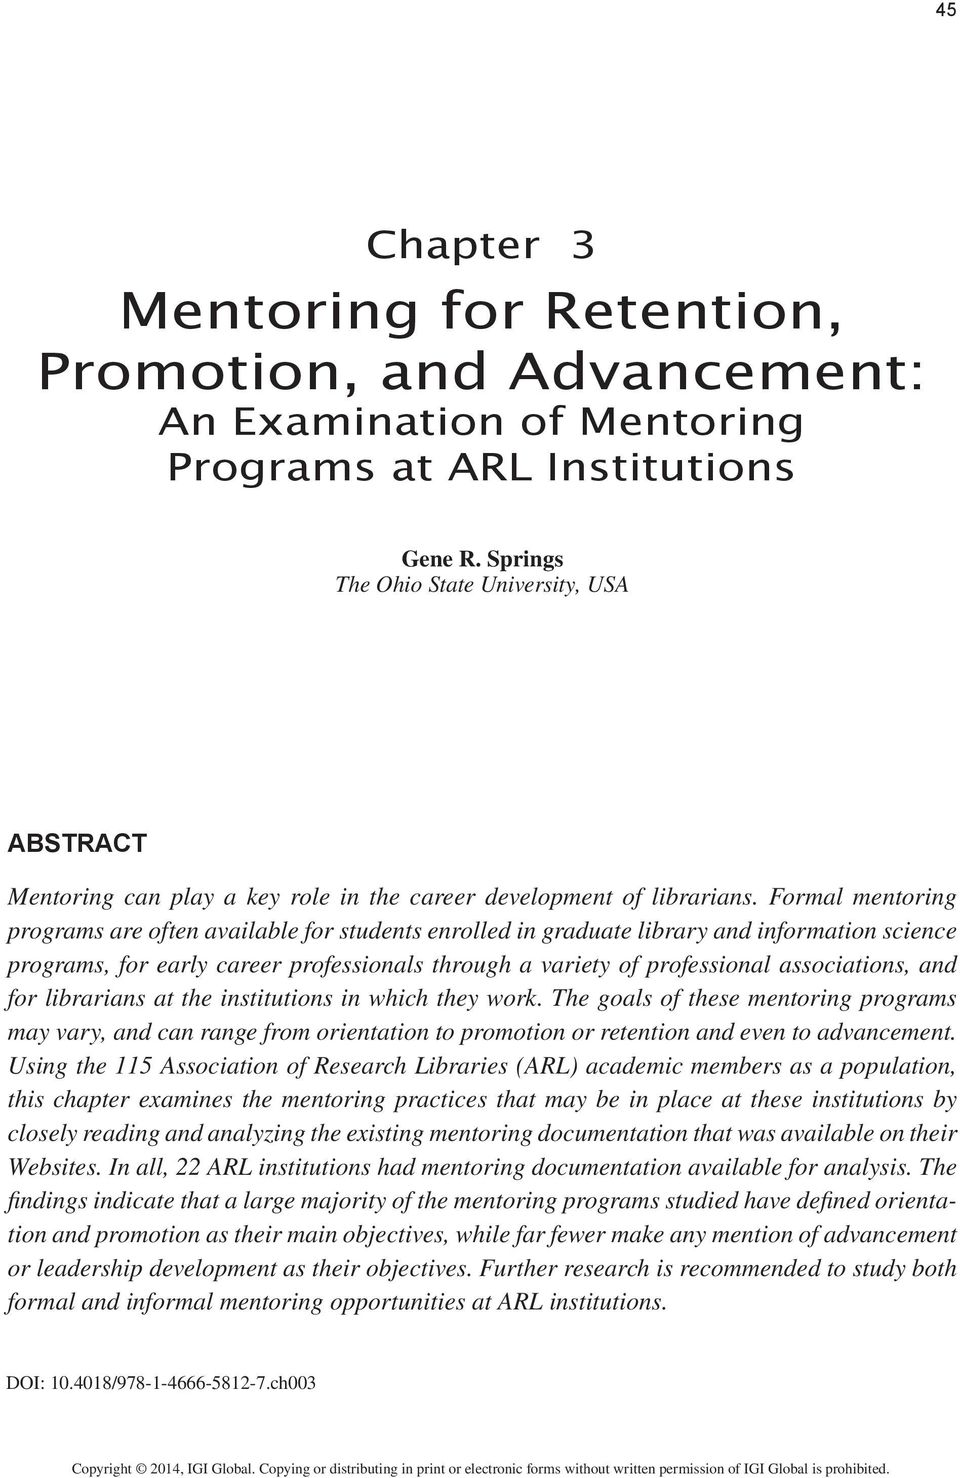 Formal mentoring programs are often available for students enrolled in graduate library and information science programs, for early career professionals through a variety of professional